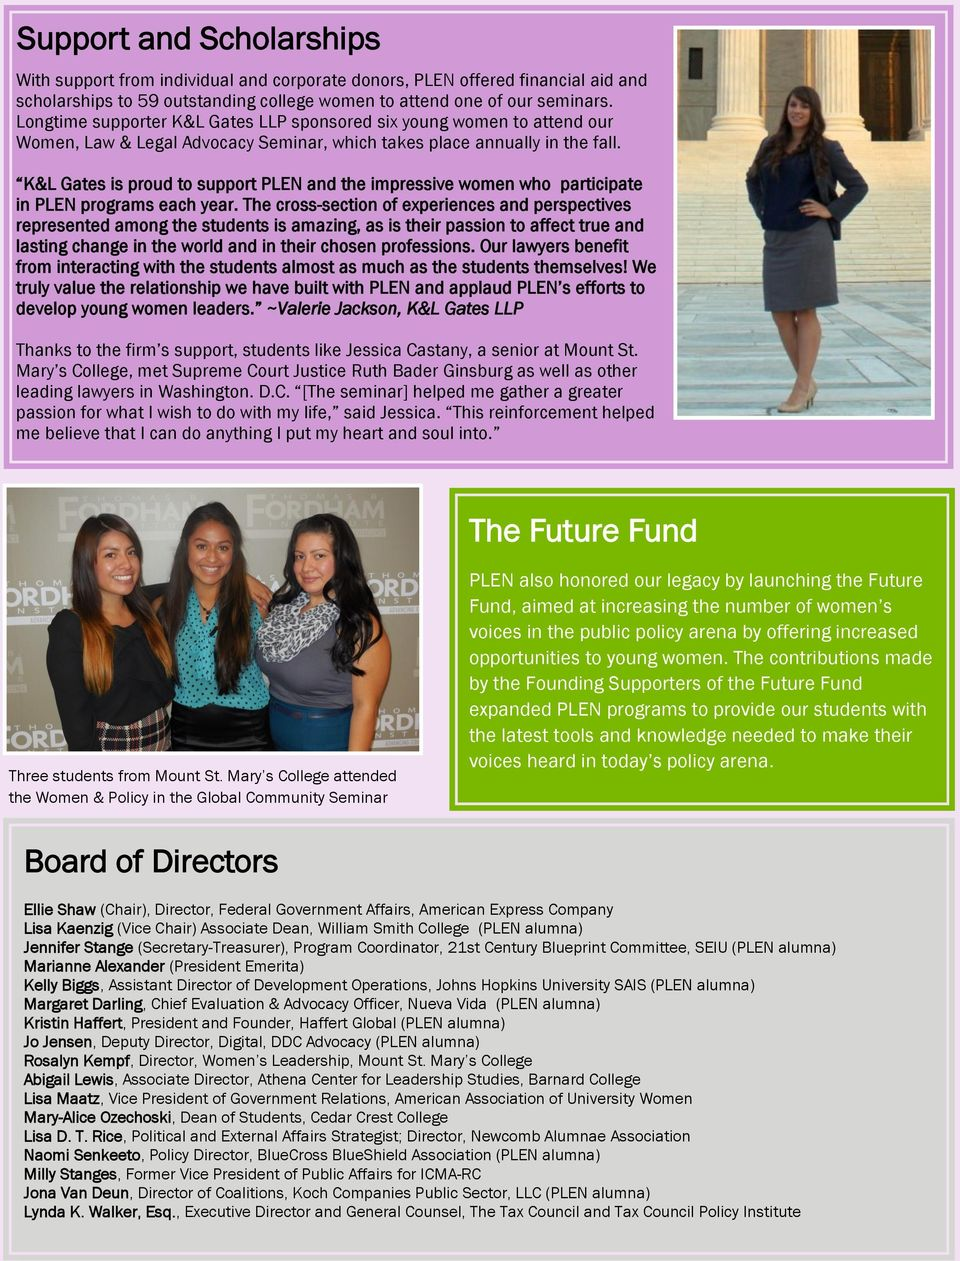 K&L Gates is proud to support PLEN and the impressive women who participate in PLEN programs each year.